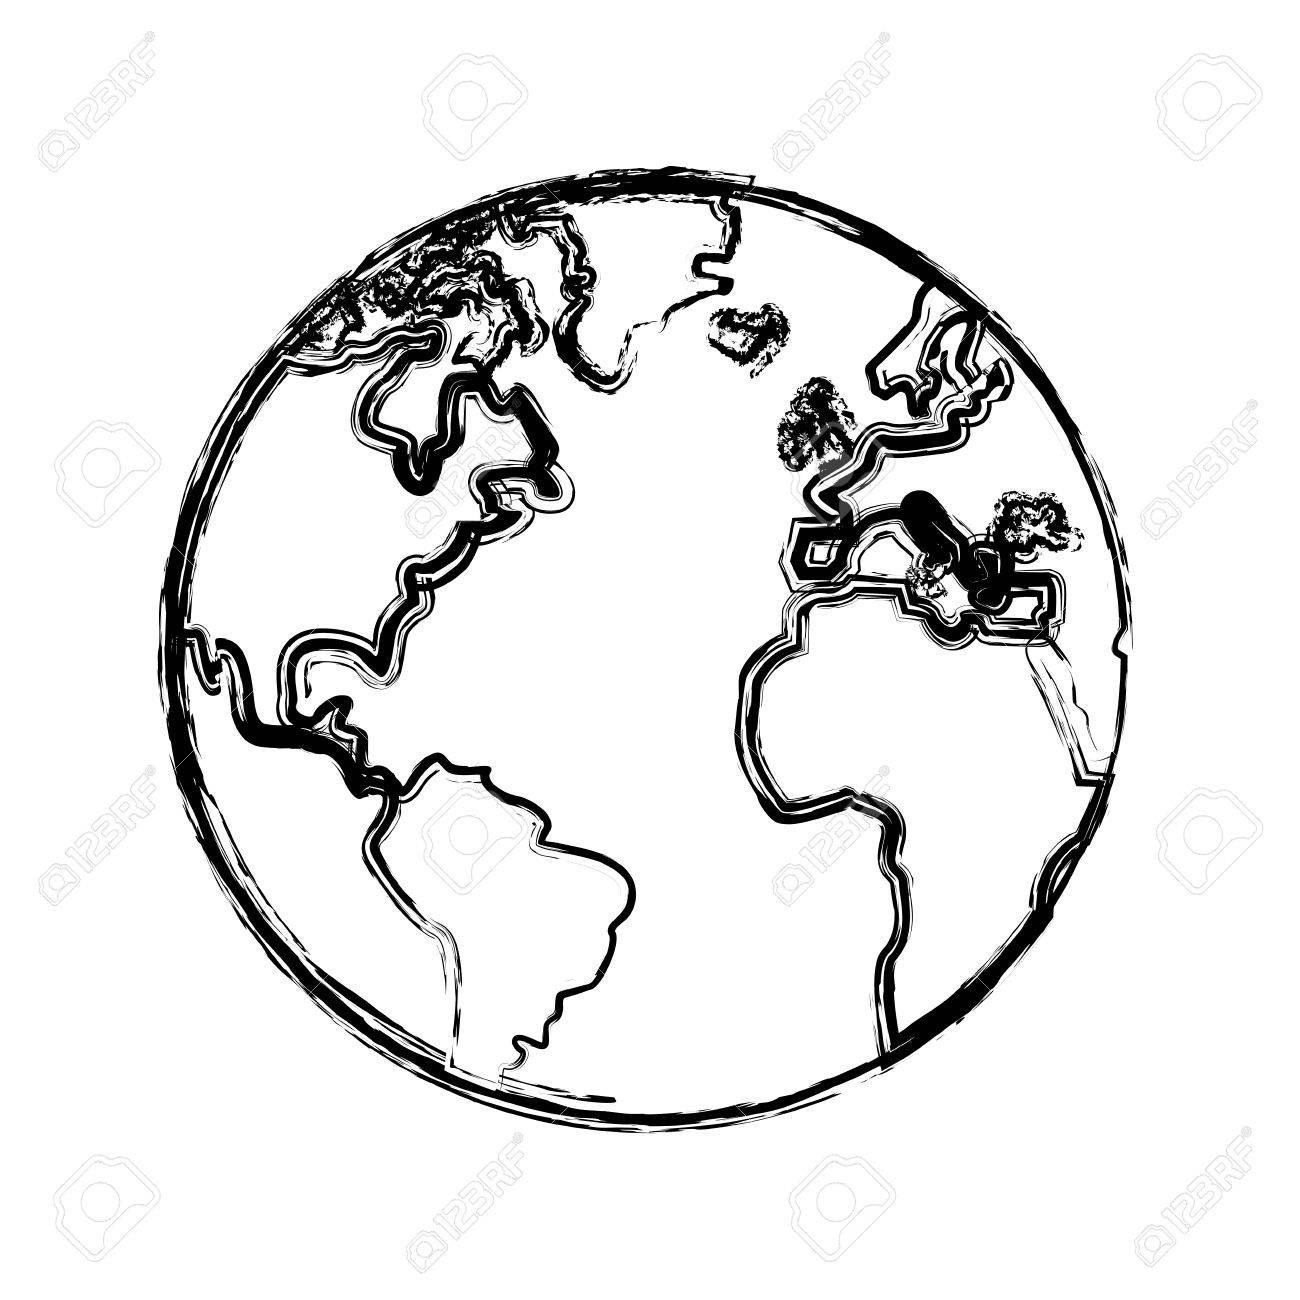 Sketch globe world earth map icon vector illustration royalty free sketch globe world earth map icon vector illustration stock vector 79062371 gumiabroncs